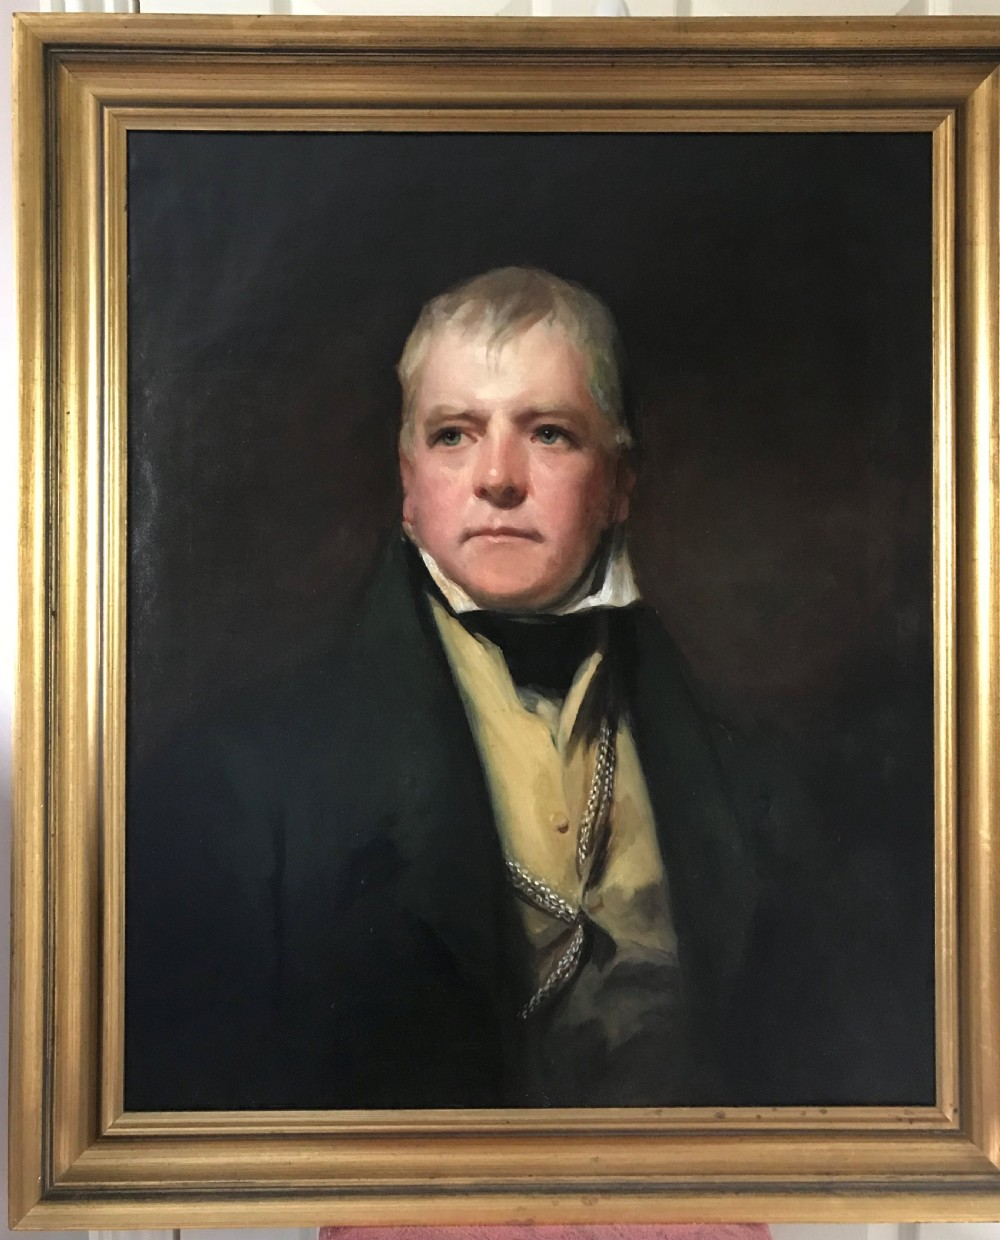 sir walter scott c1830 after raeburn